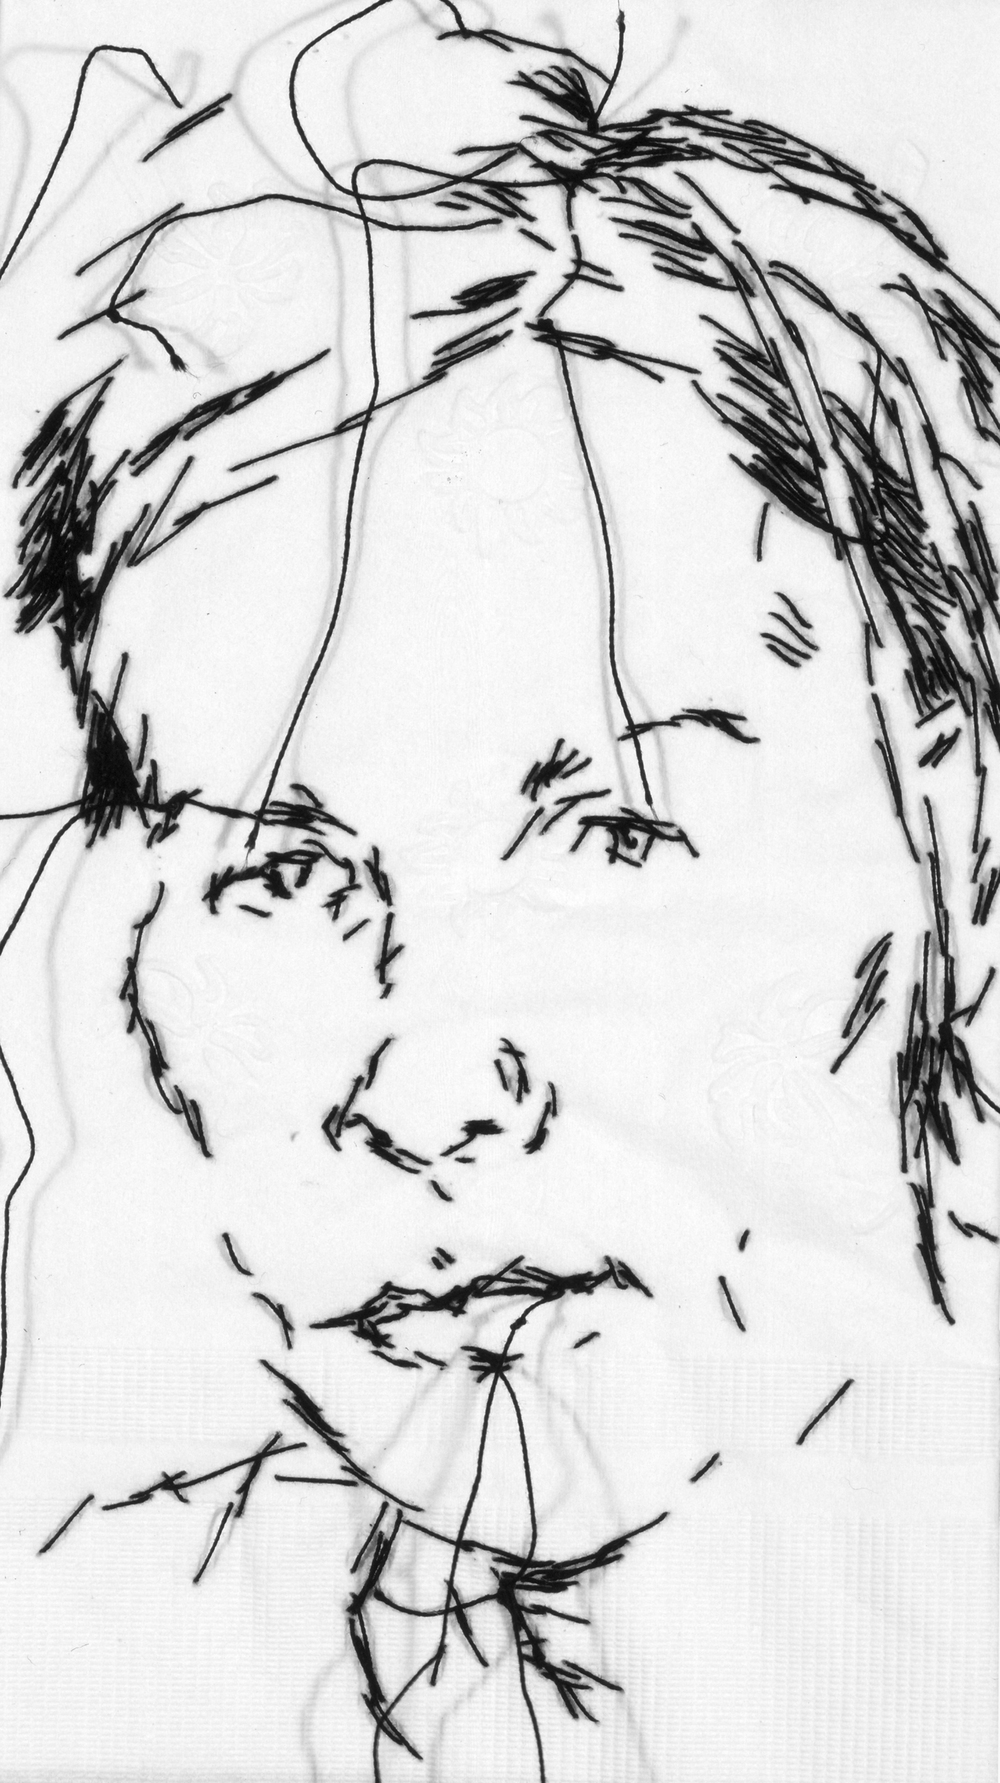 "Jes  Black thread on paper napkin, 7"" x 4"", 2007"